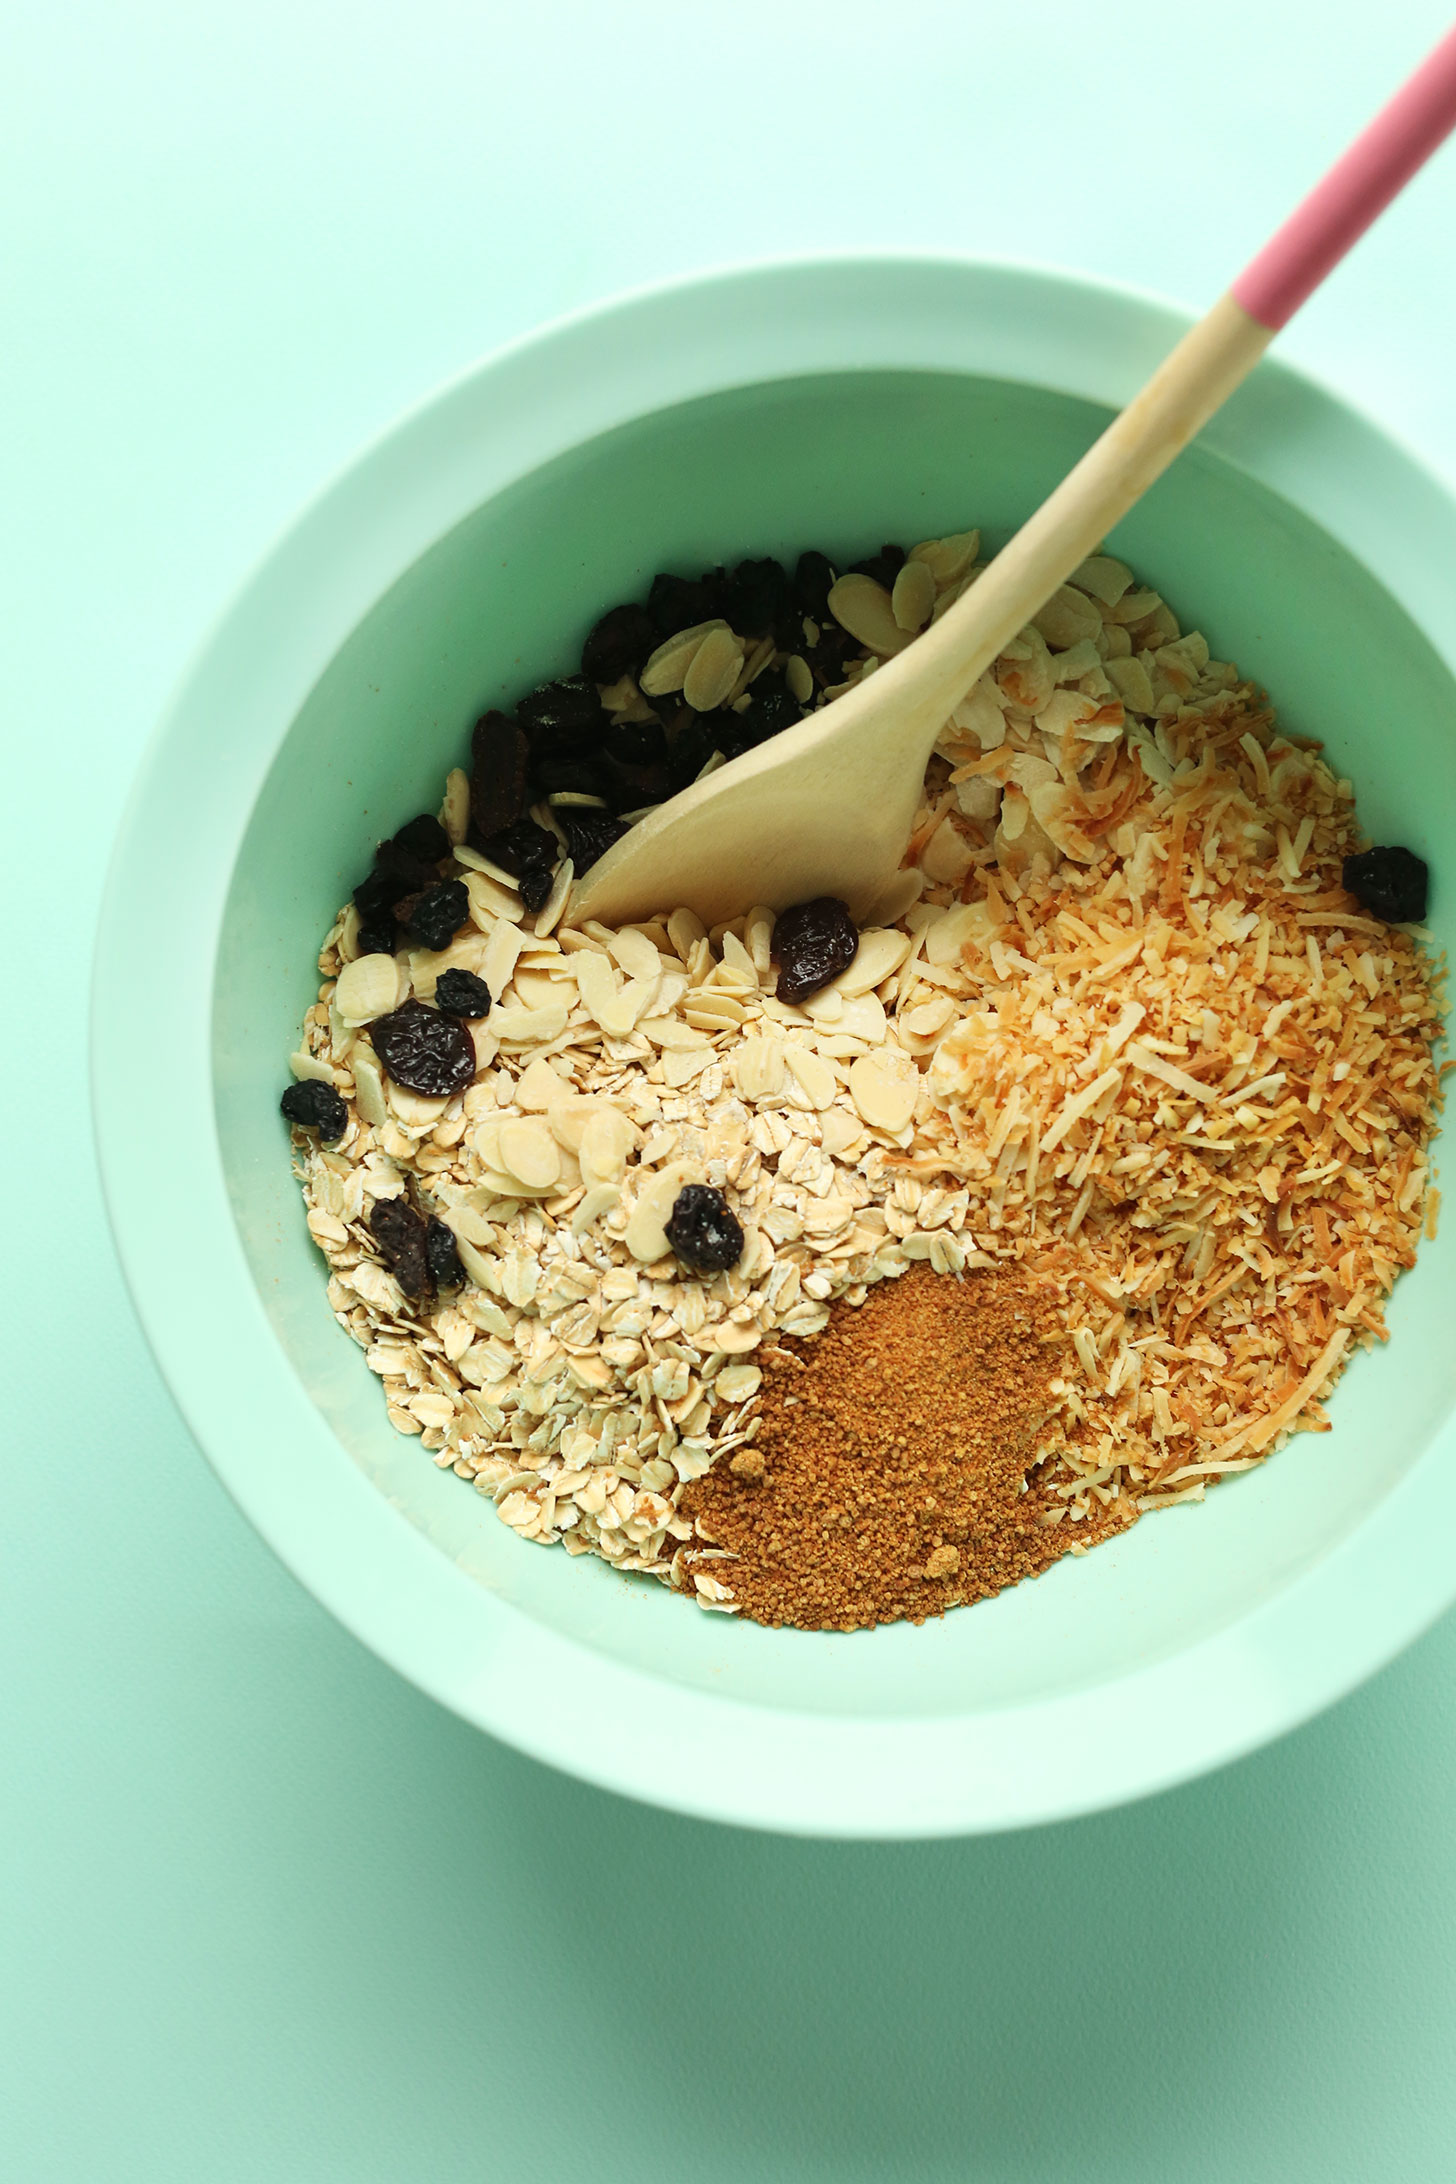 Mixing bowl with ingredients for our naturally-sweetened Toasted Coconut Baked Oatmeal